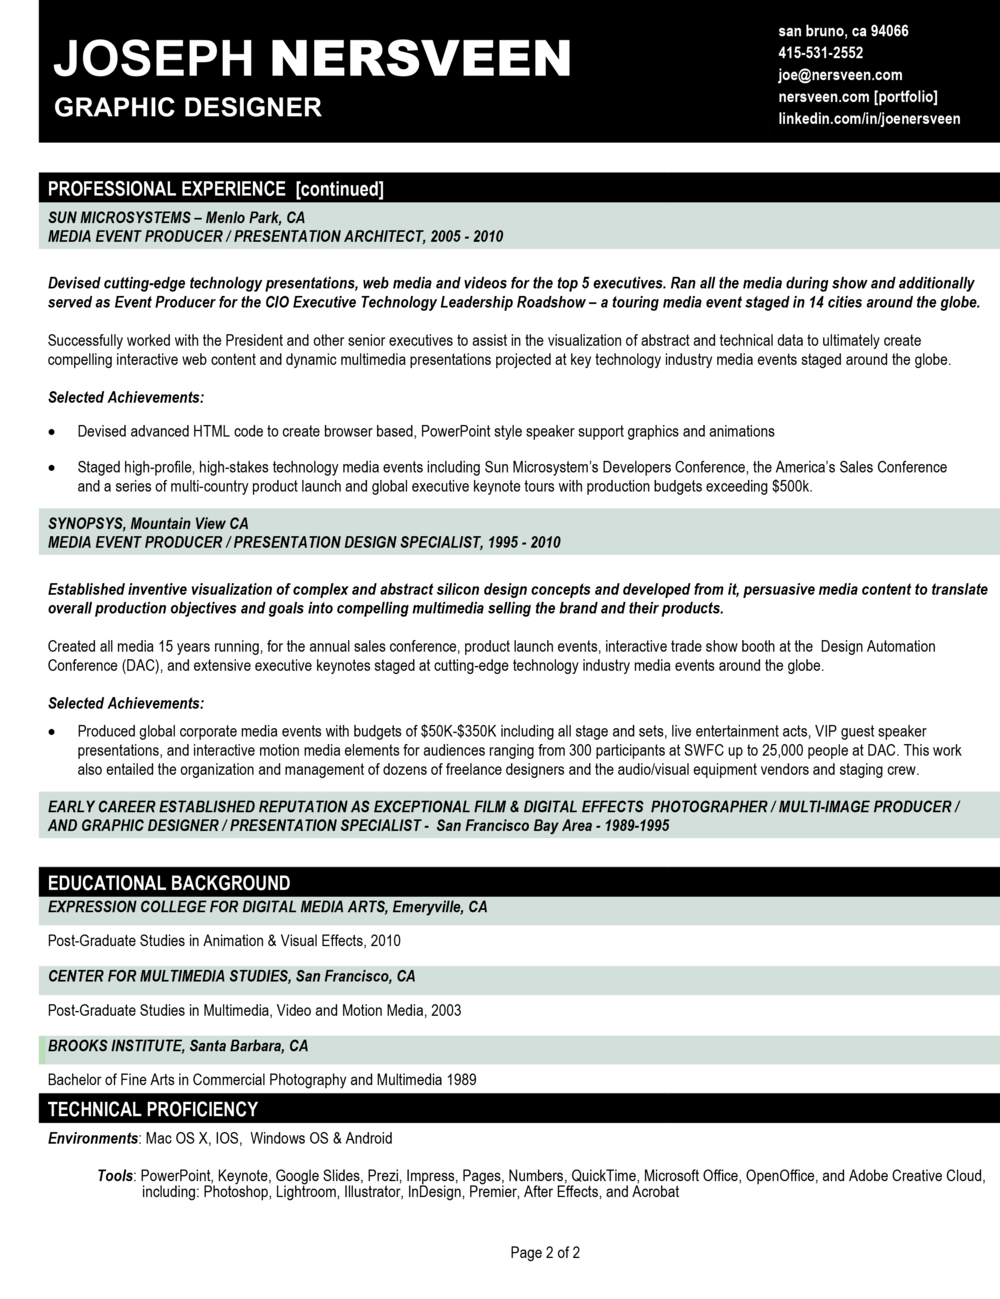 resume joe multimedia design word version